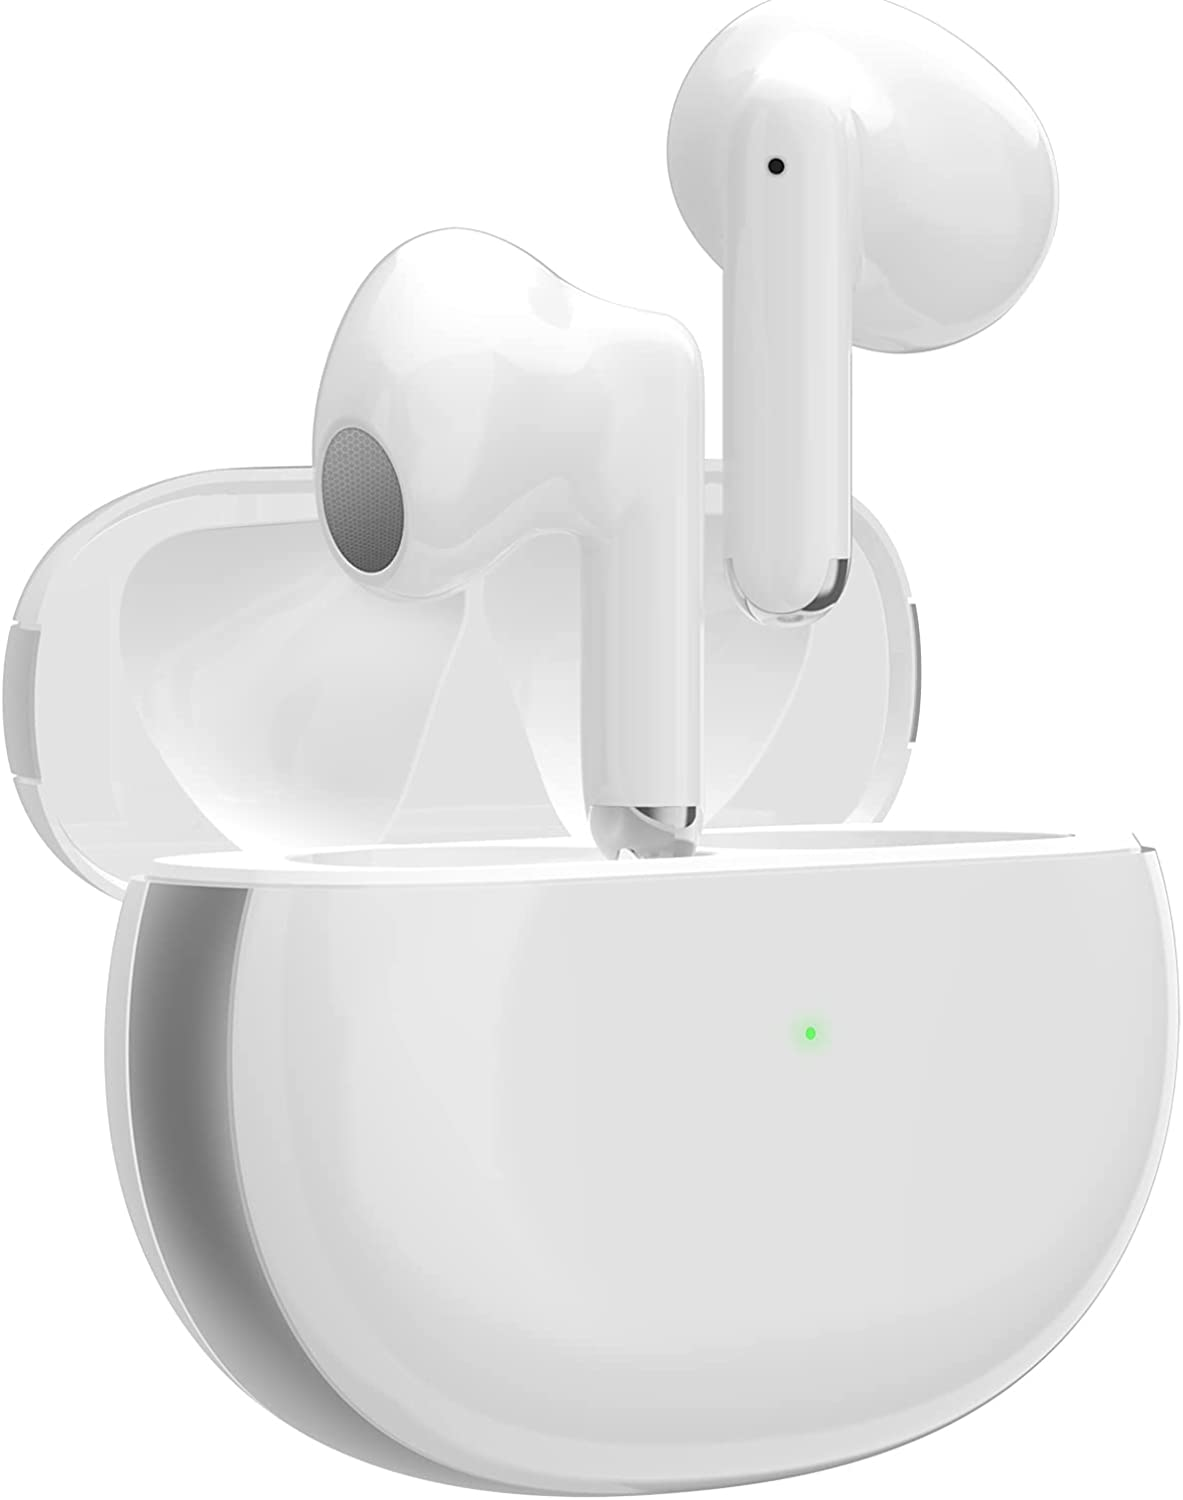 Wireless Earbuds Bluetooth 5.2 Headphones with Fast Charging Case High Fidelity Stereo CVC8.0 Noise Cancelling Earbuds in-Ear Built-in Mic Touch Earbuds IPX5 Waterproof for iPhone/Android/Samsung